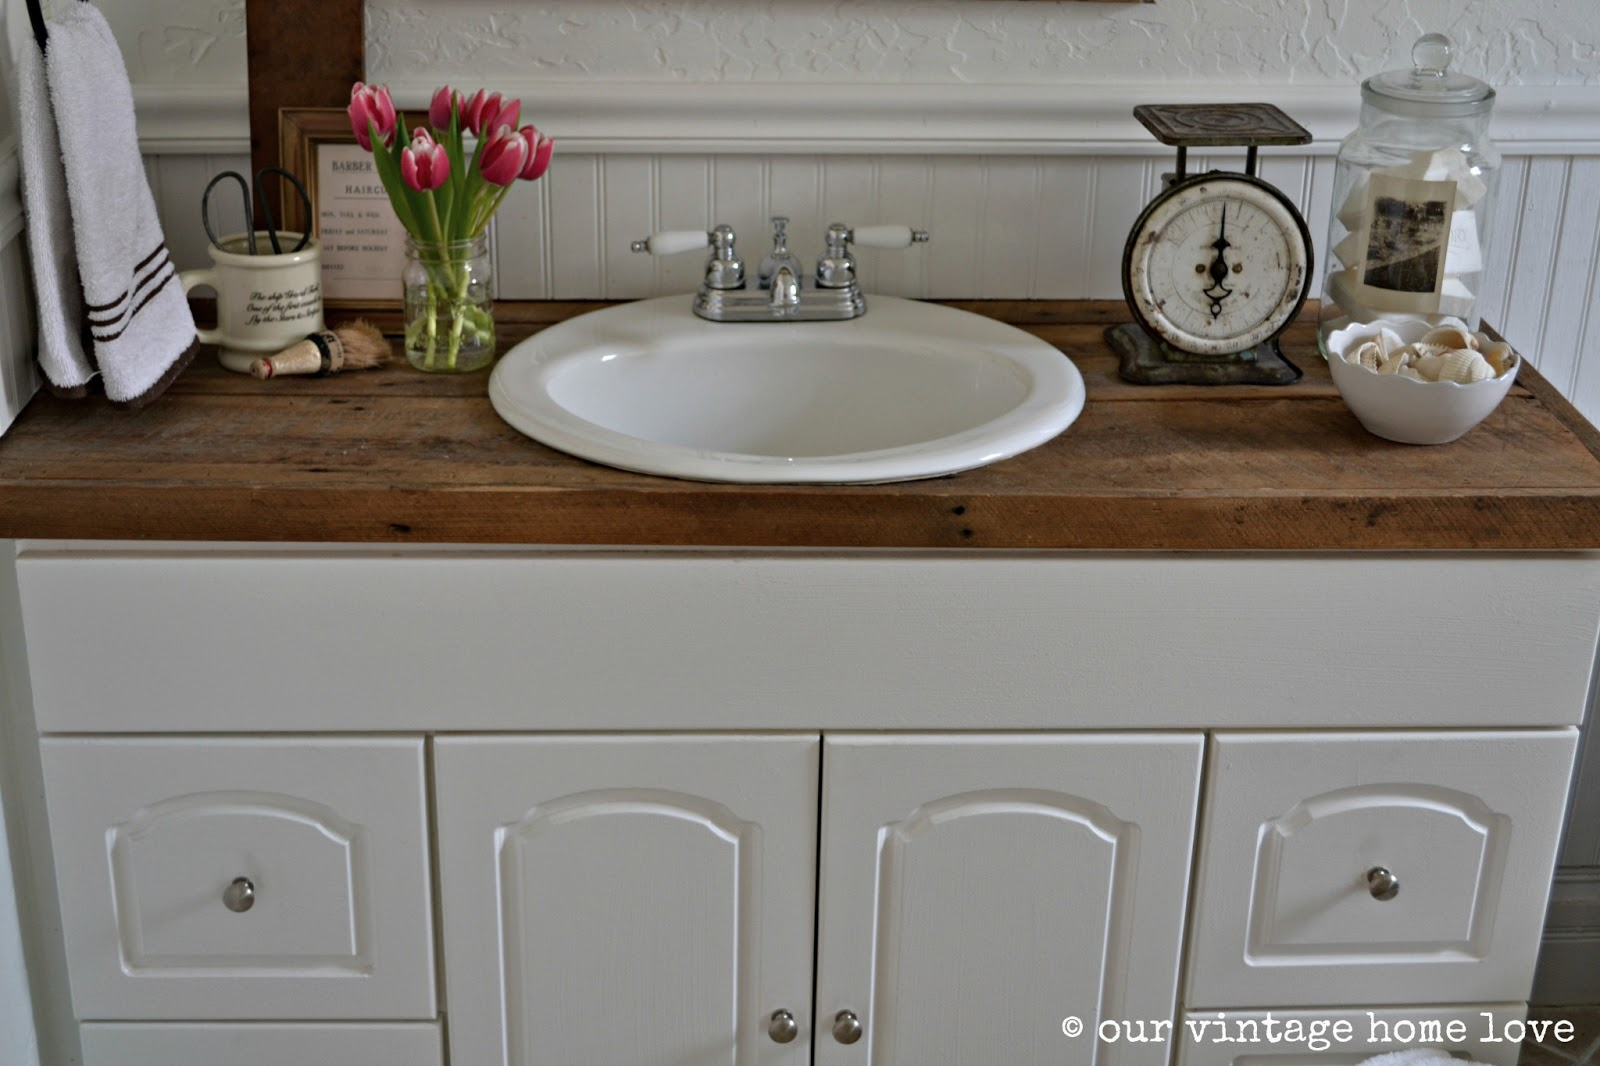 Our vintage home love farmhouse bathroom for Bathroom countertop accessories